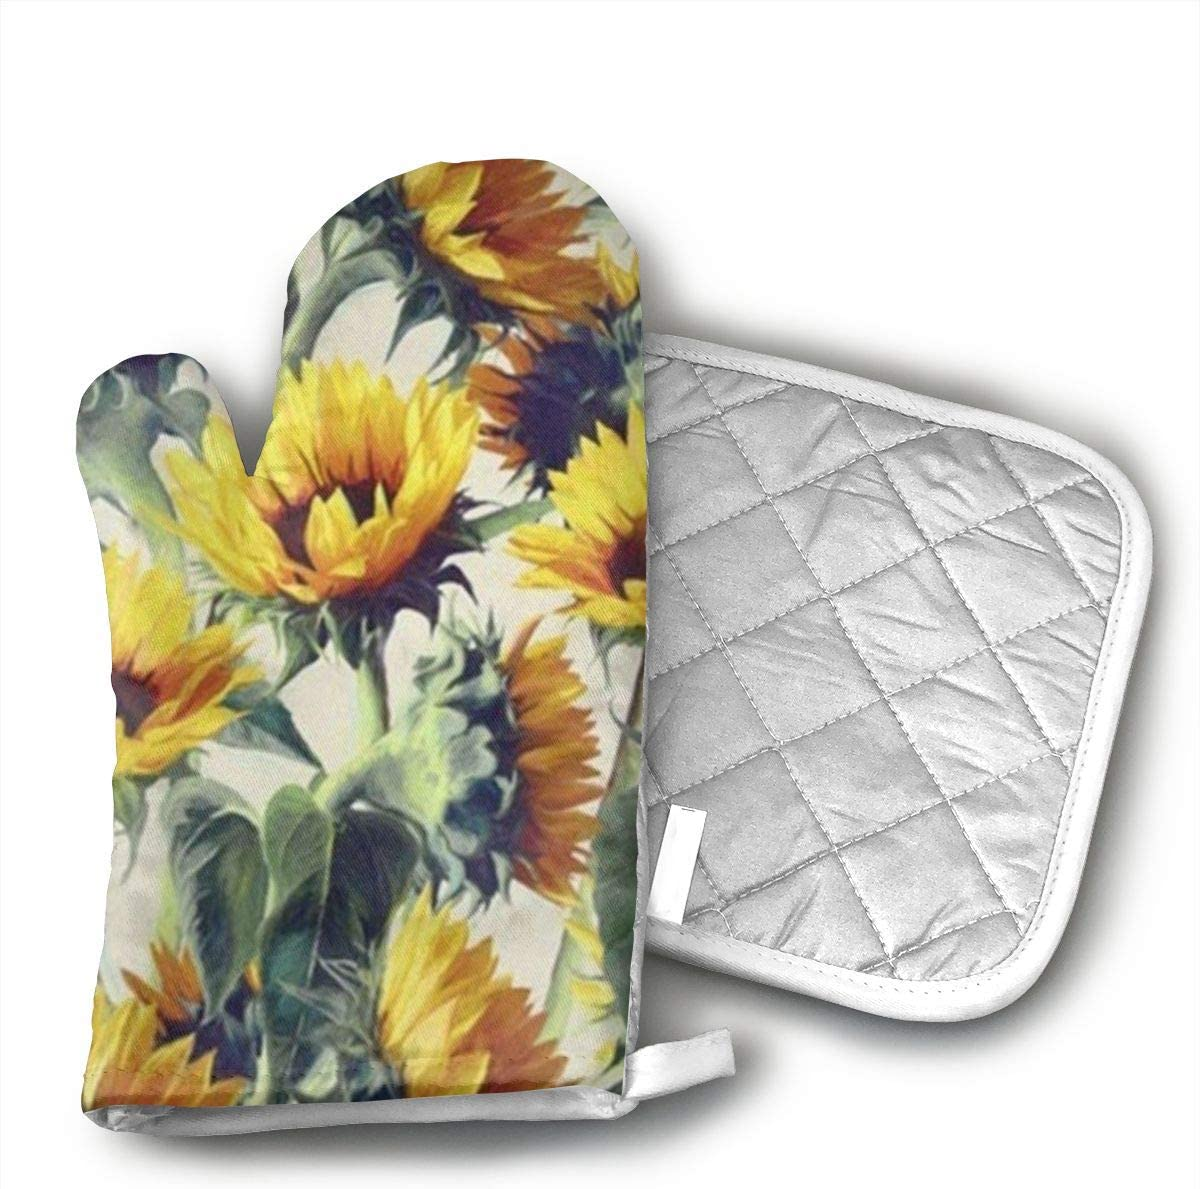 Wiqo9 Yellow Sunflower Oven Mitts and Pot Holders Kitchen Mitten Cooking Gloves,Cooking, Baking, BBQ.